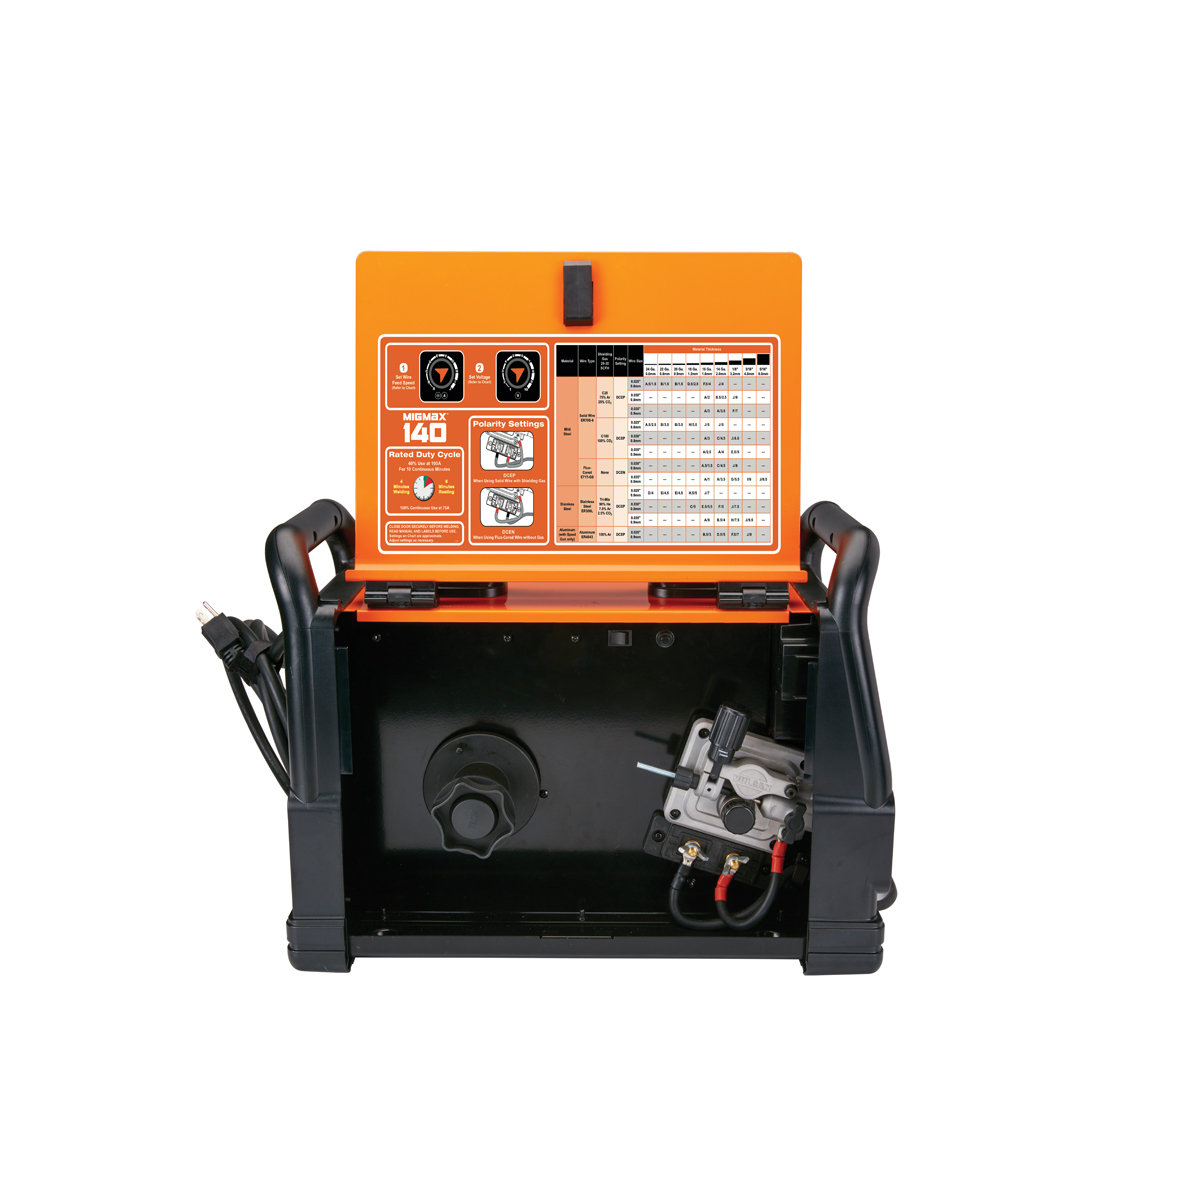 Migmax 140 Industrial Welder With 120 Volt Input Wiring An Outlet For A